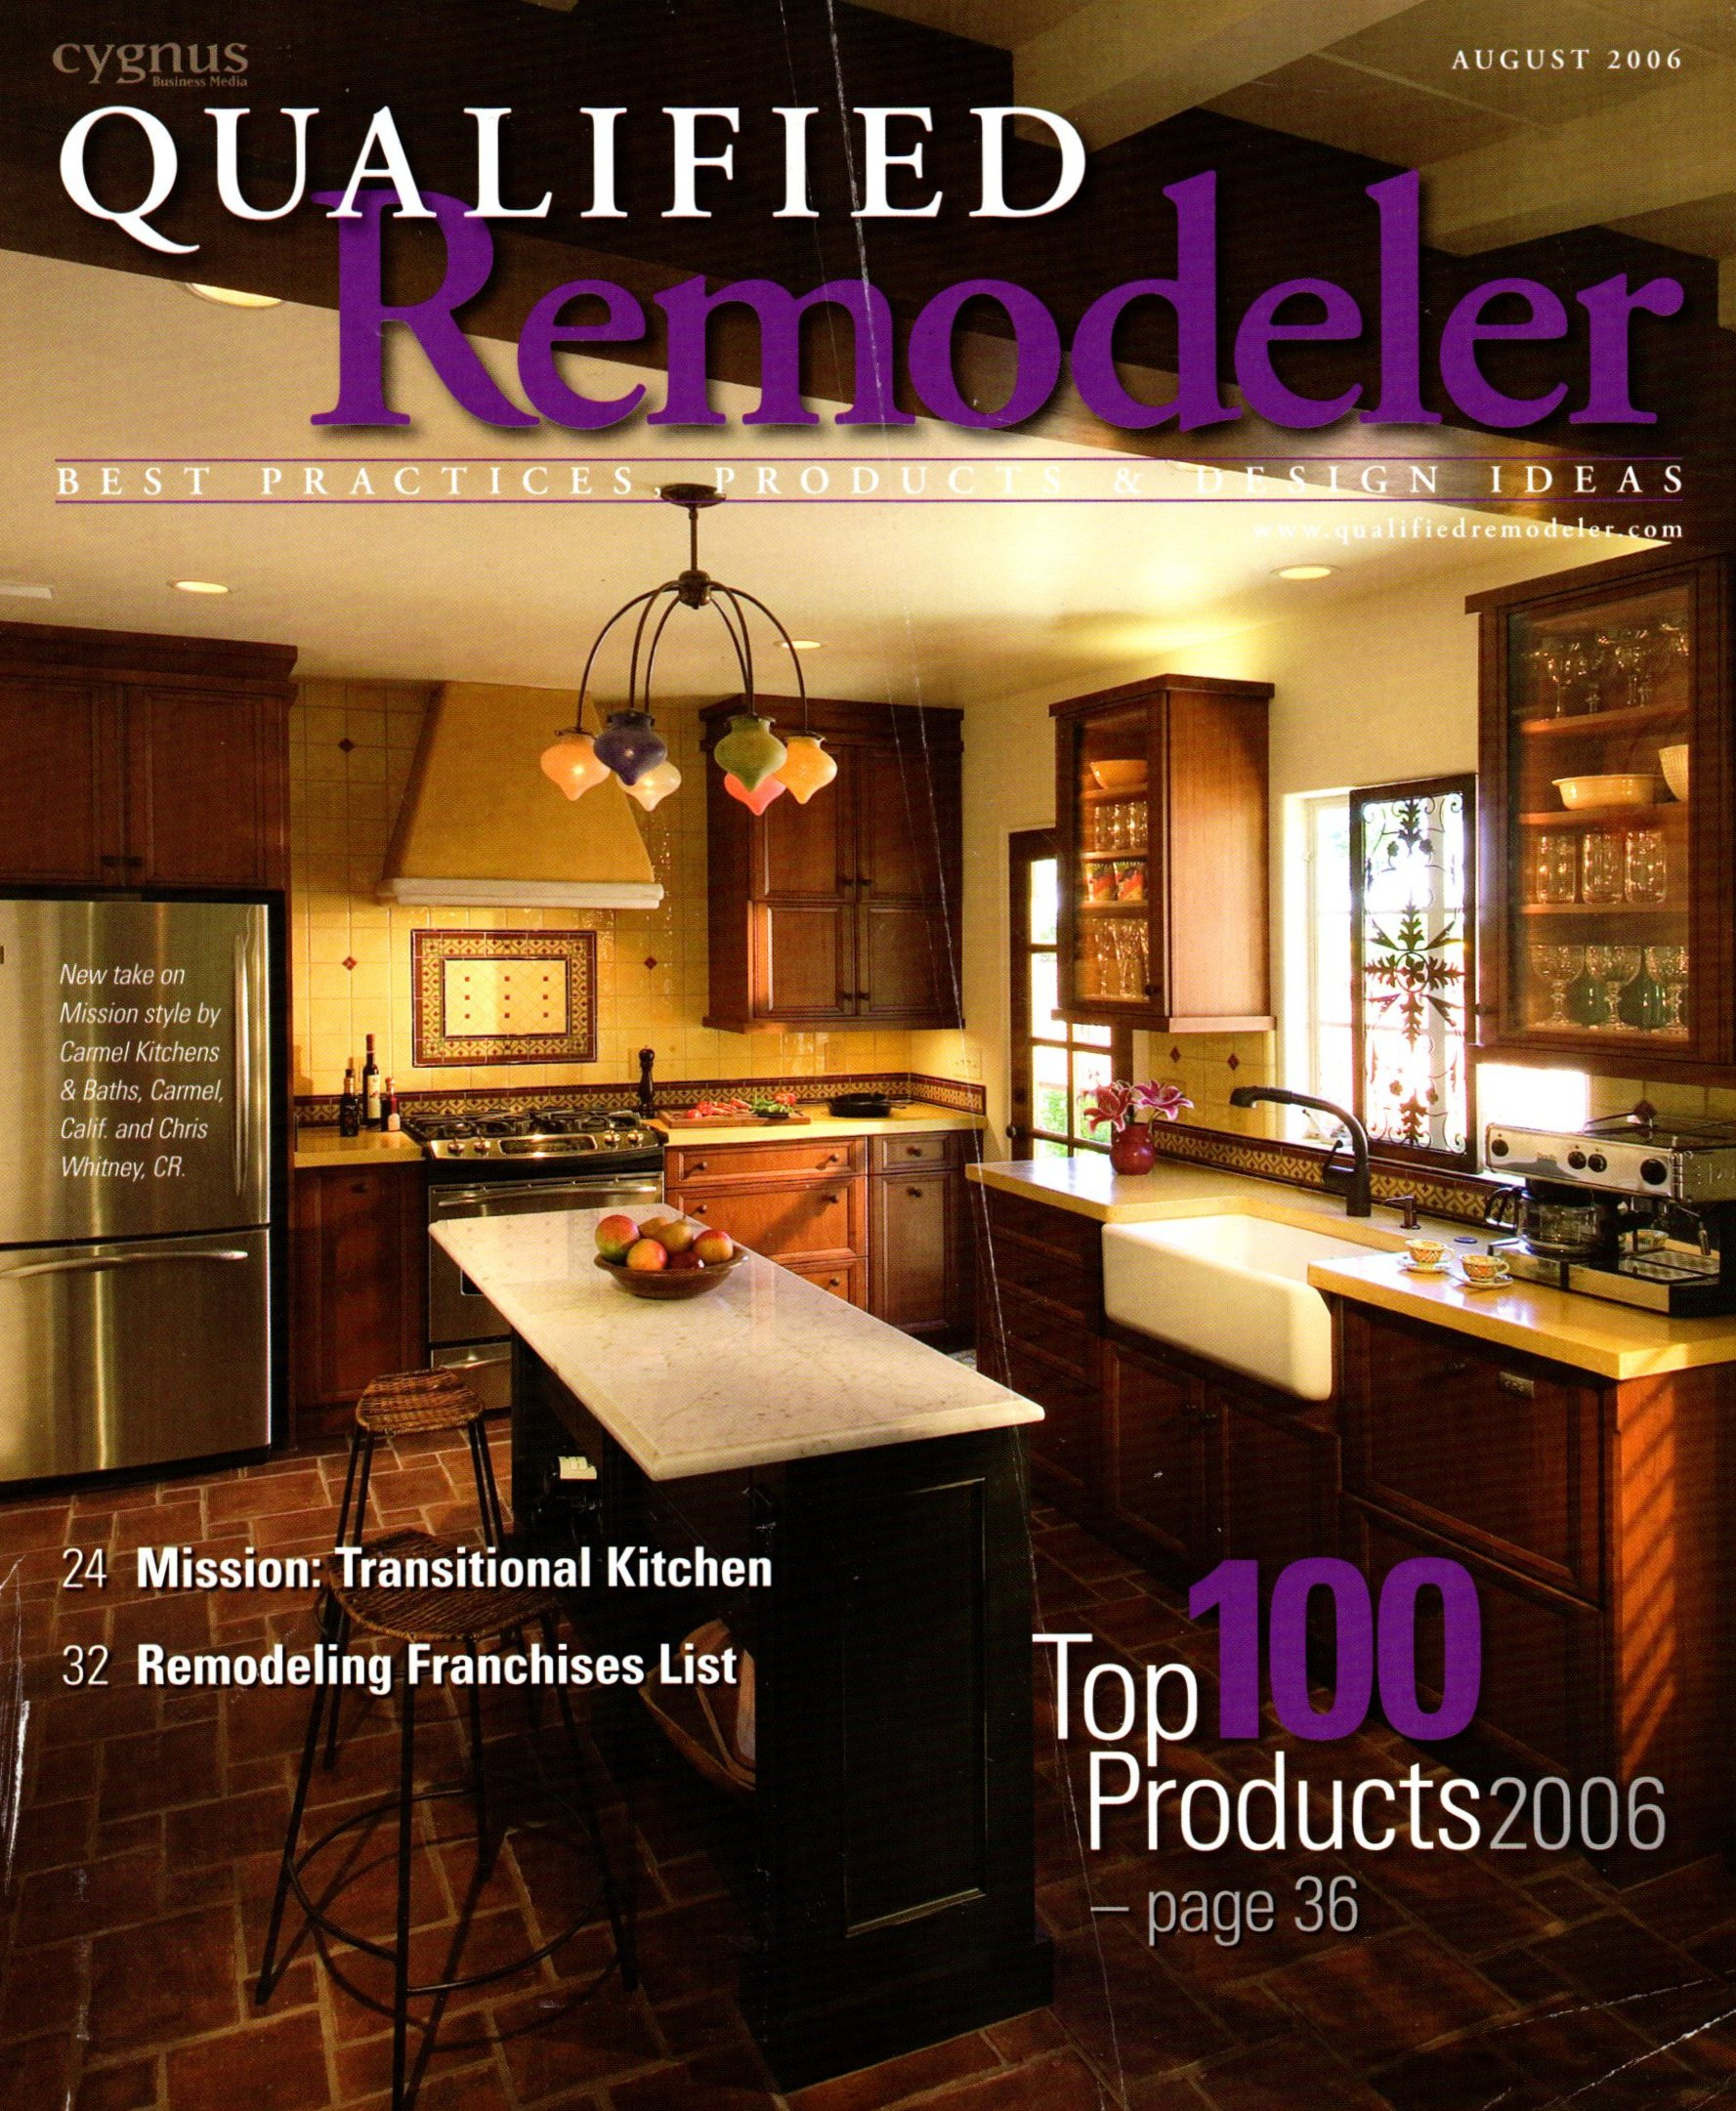 Qualified Remodeler, August 2006